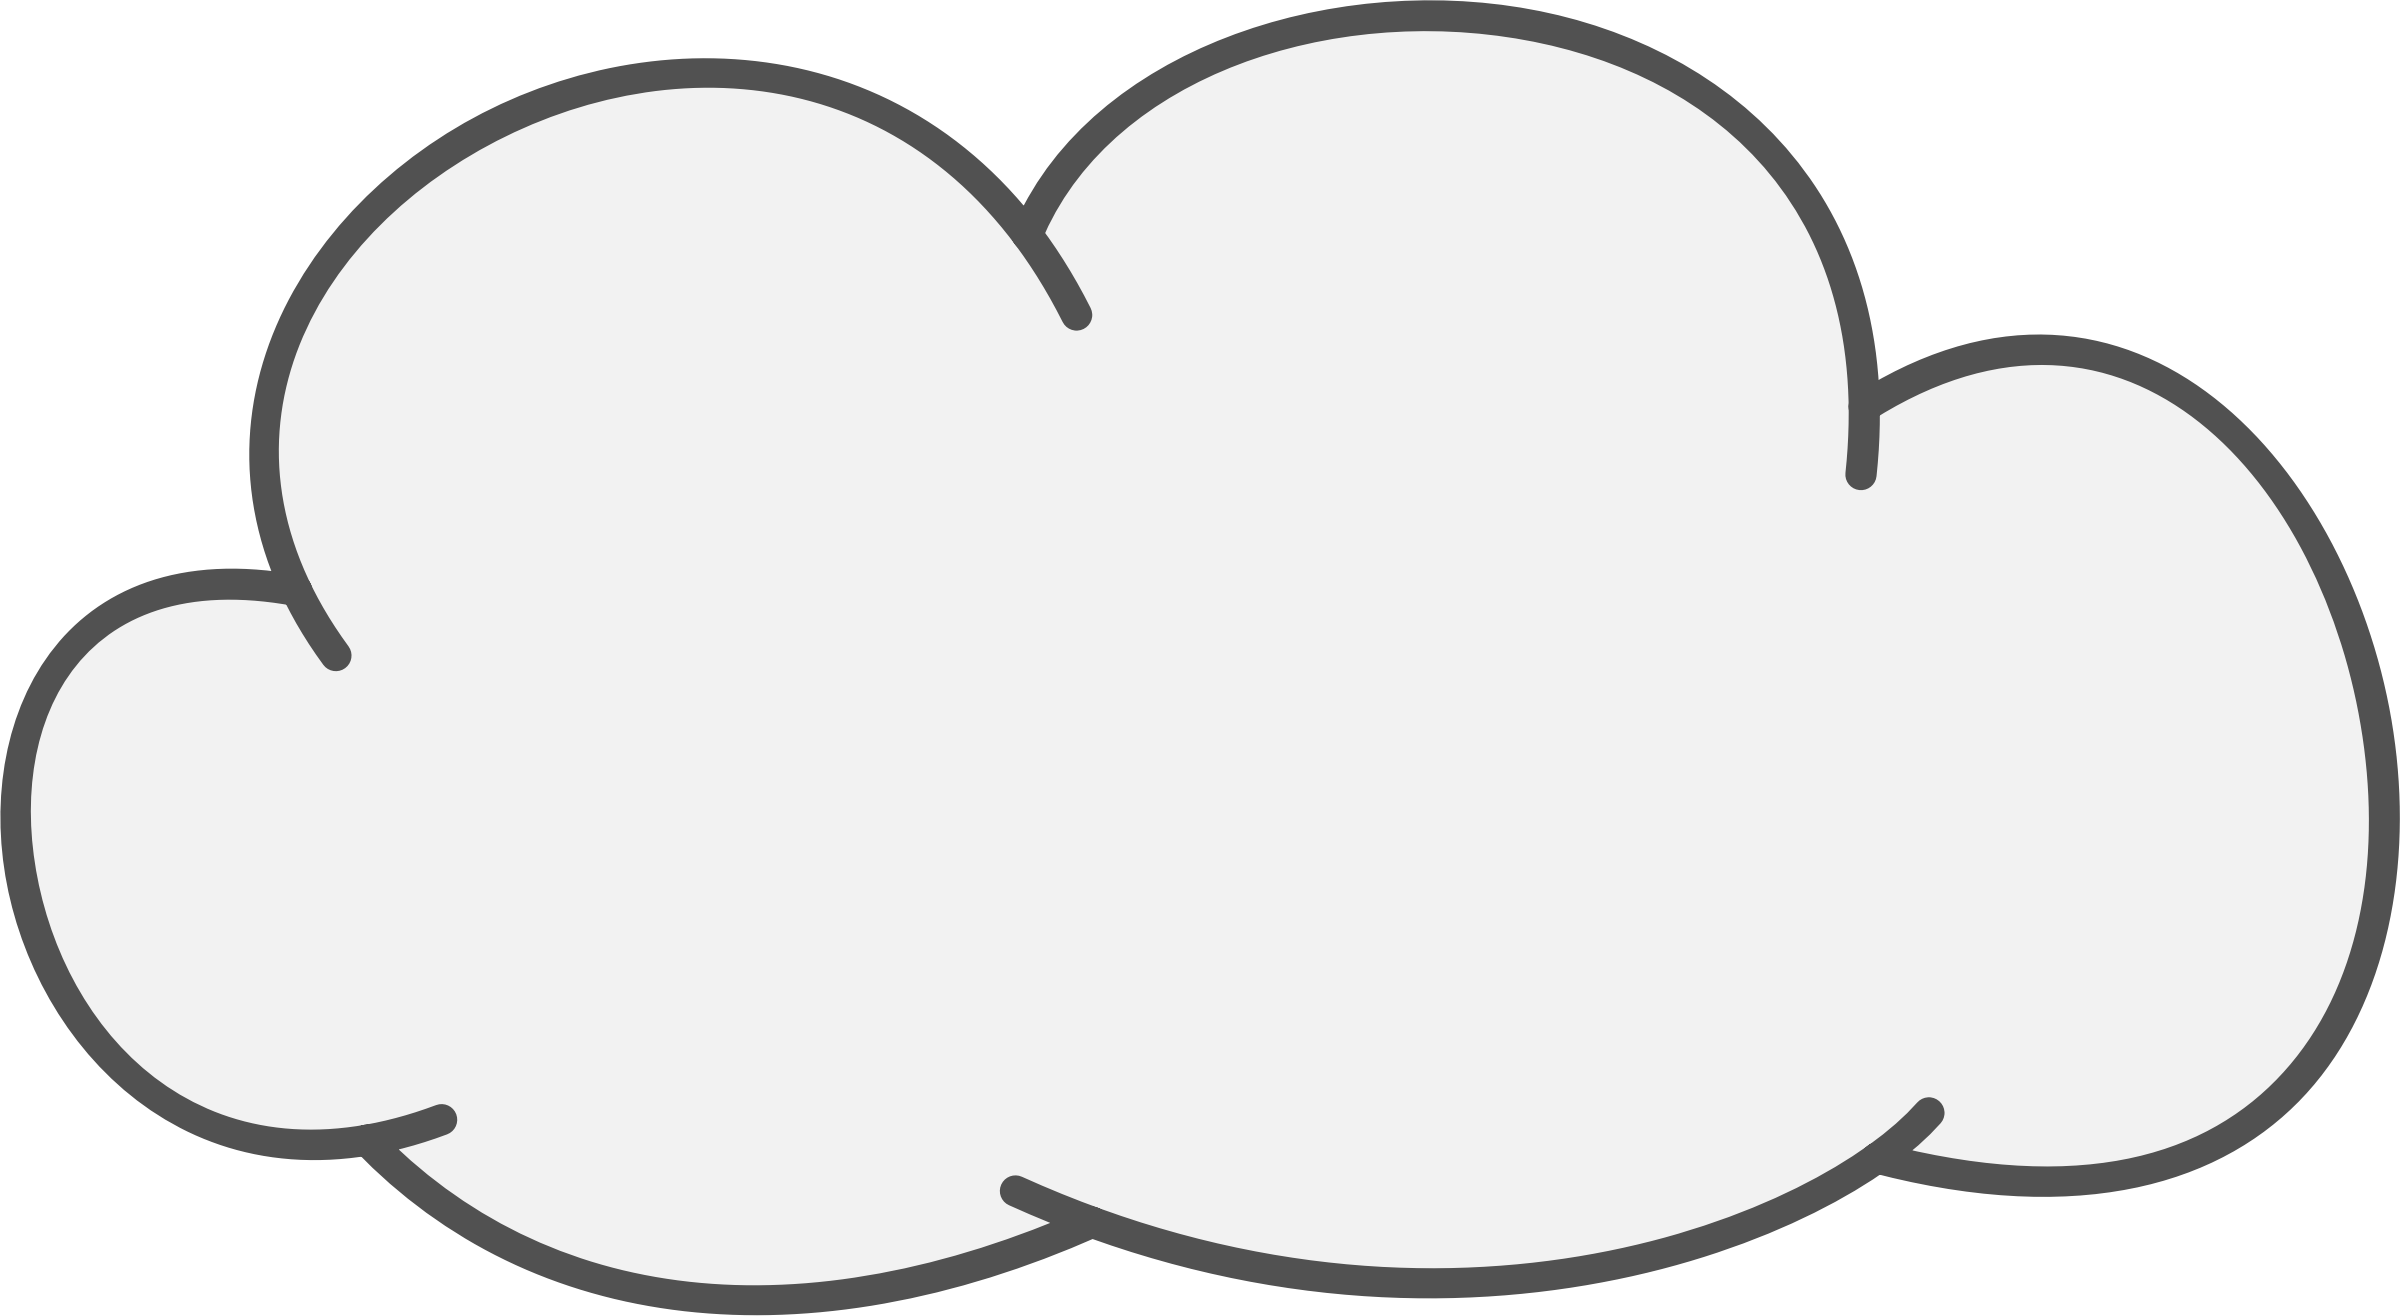 Cloud clipart clear background #1